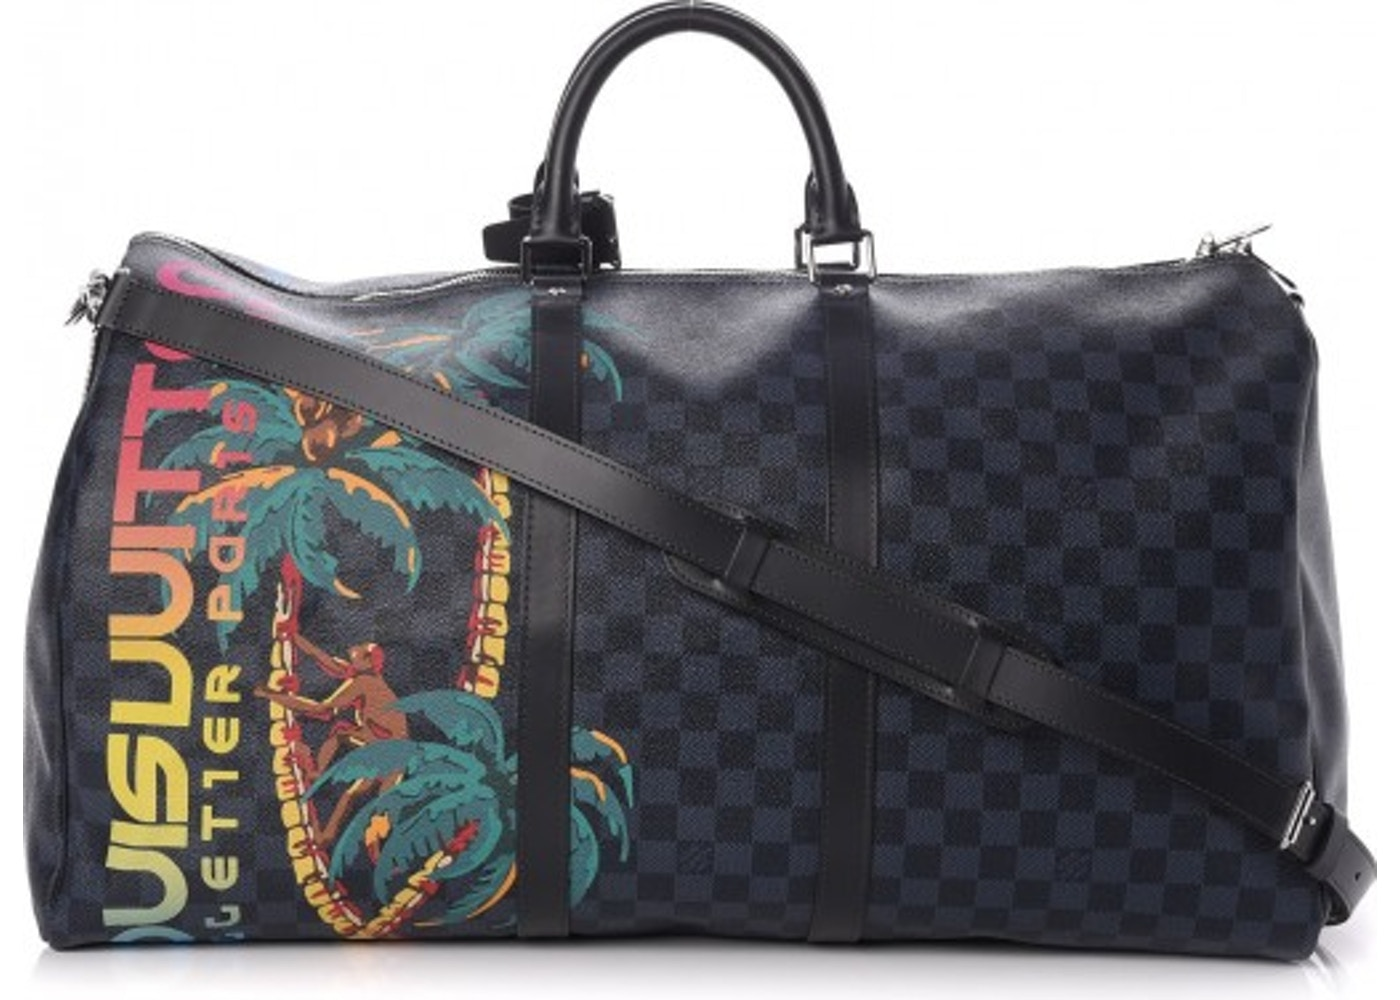 8eb7f820699bb Louis Vuitton Keepall Bandouliere Damier Cobalt Jungle With  Accessories Printed 55 Black Blue. Damier Cobalt Jungle With  Accessories Printed 55 Black Blue